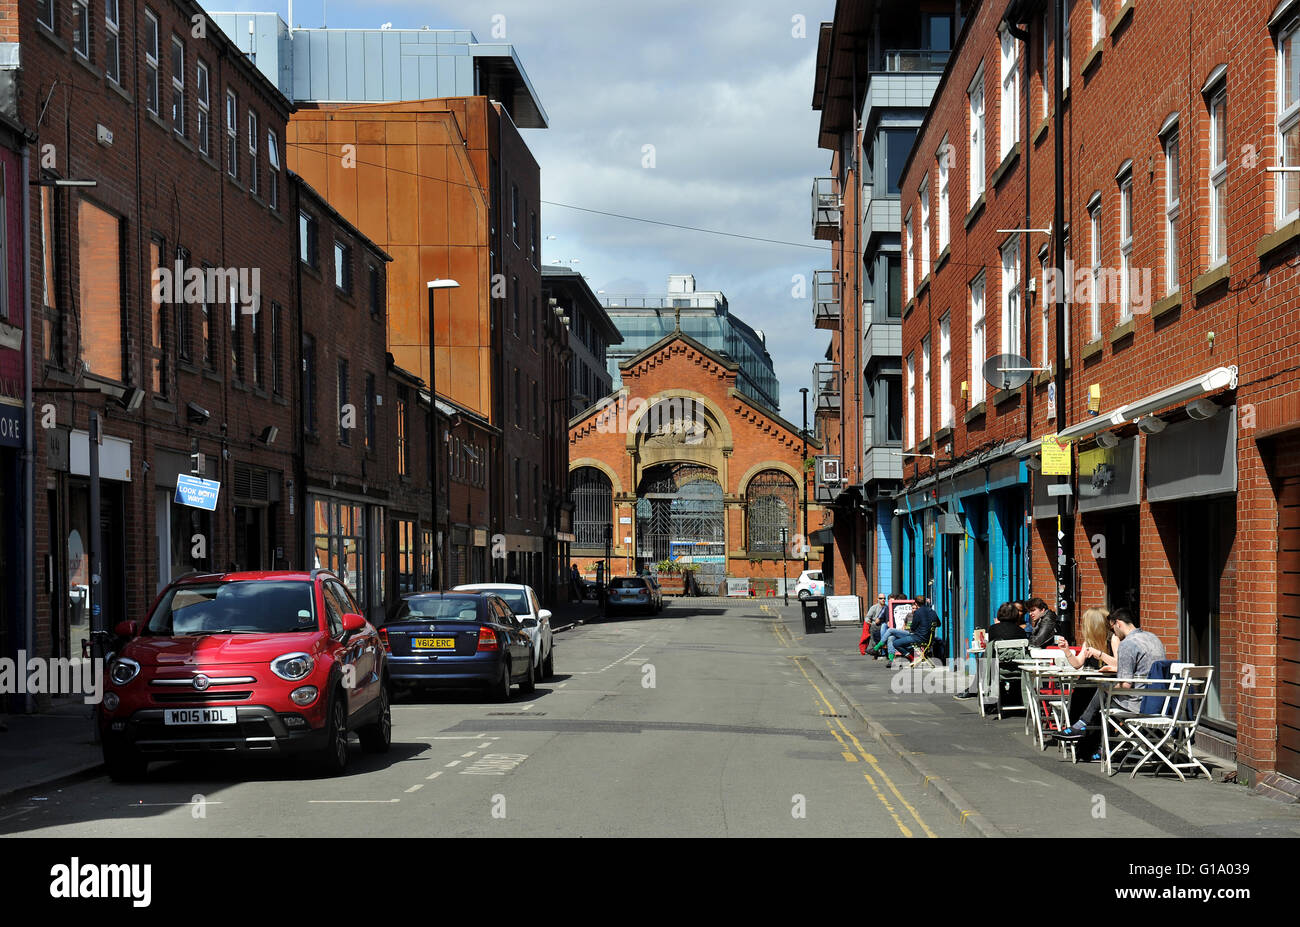 Northern Quarter, Manchester, Tuesday May 10, 2016. - Stock Image